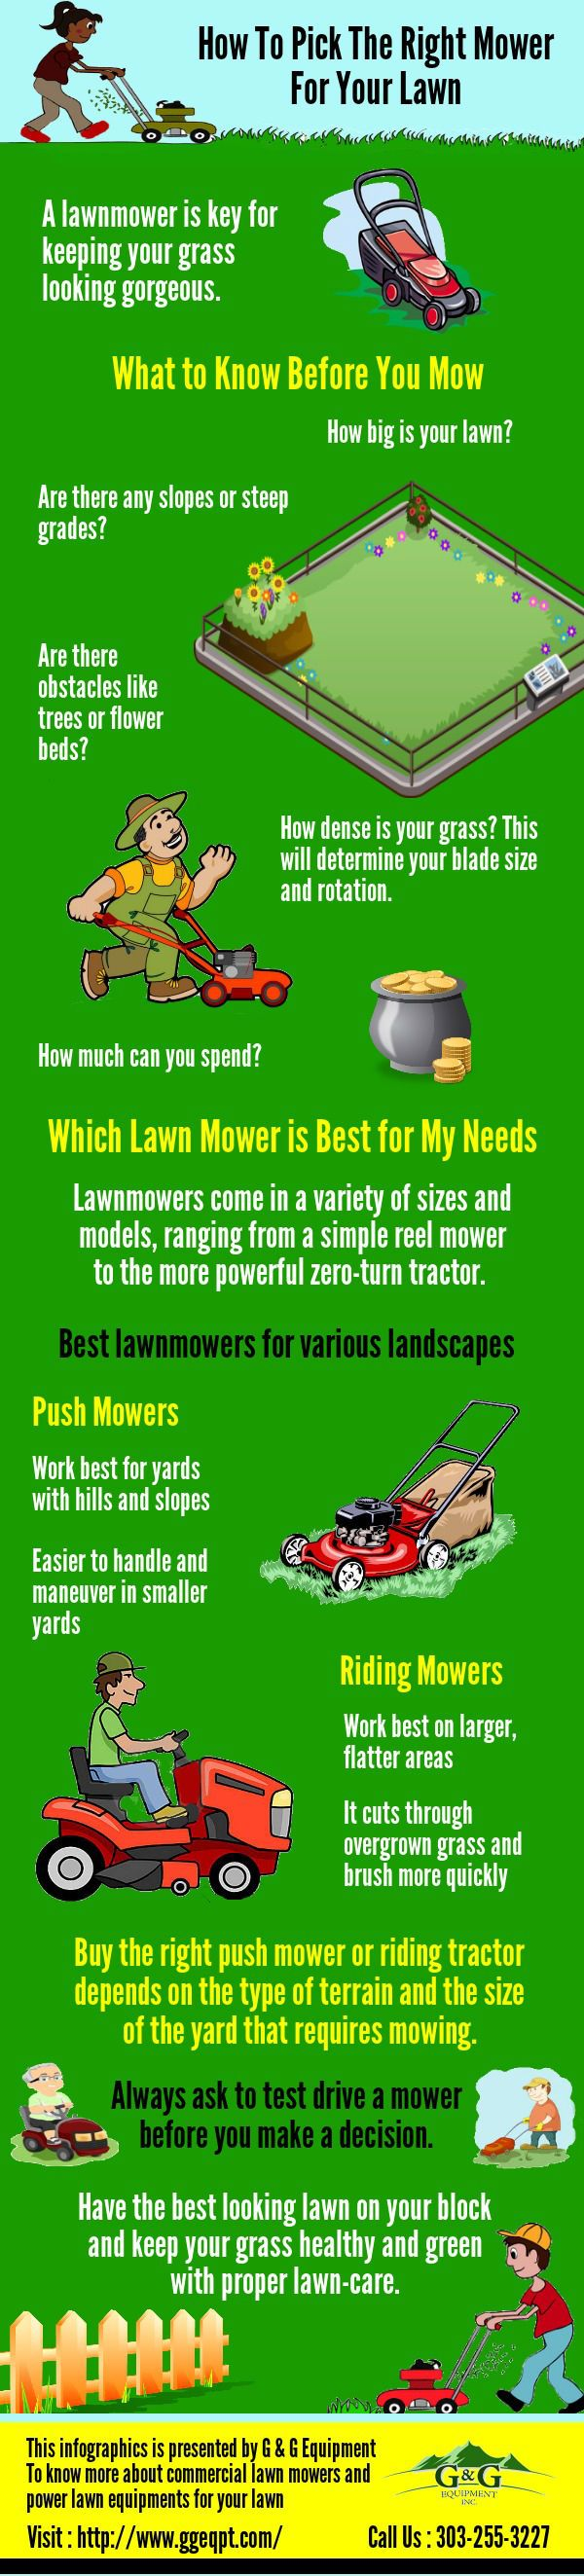 How to Pick the Right Mower for Your Lawn A good collector mower can also be used for collecting autumn leaves or hedge-trimmings from hedges and bushes, and much more. To know more about #commercial #lawn #mowers and power lawn equipments for your lawn from G & G Equipment will get you moving! Visit : http://www.ggeqpt.com/mowers/